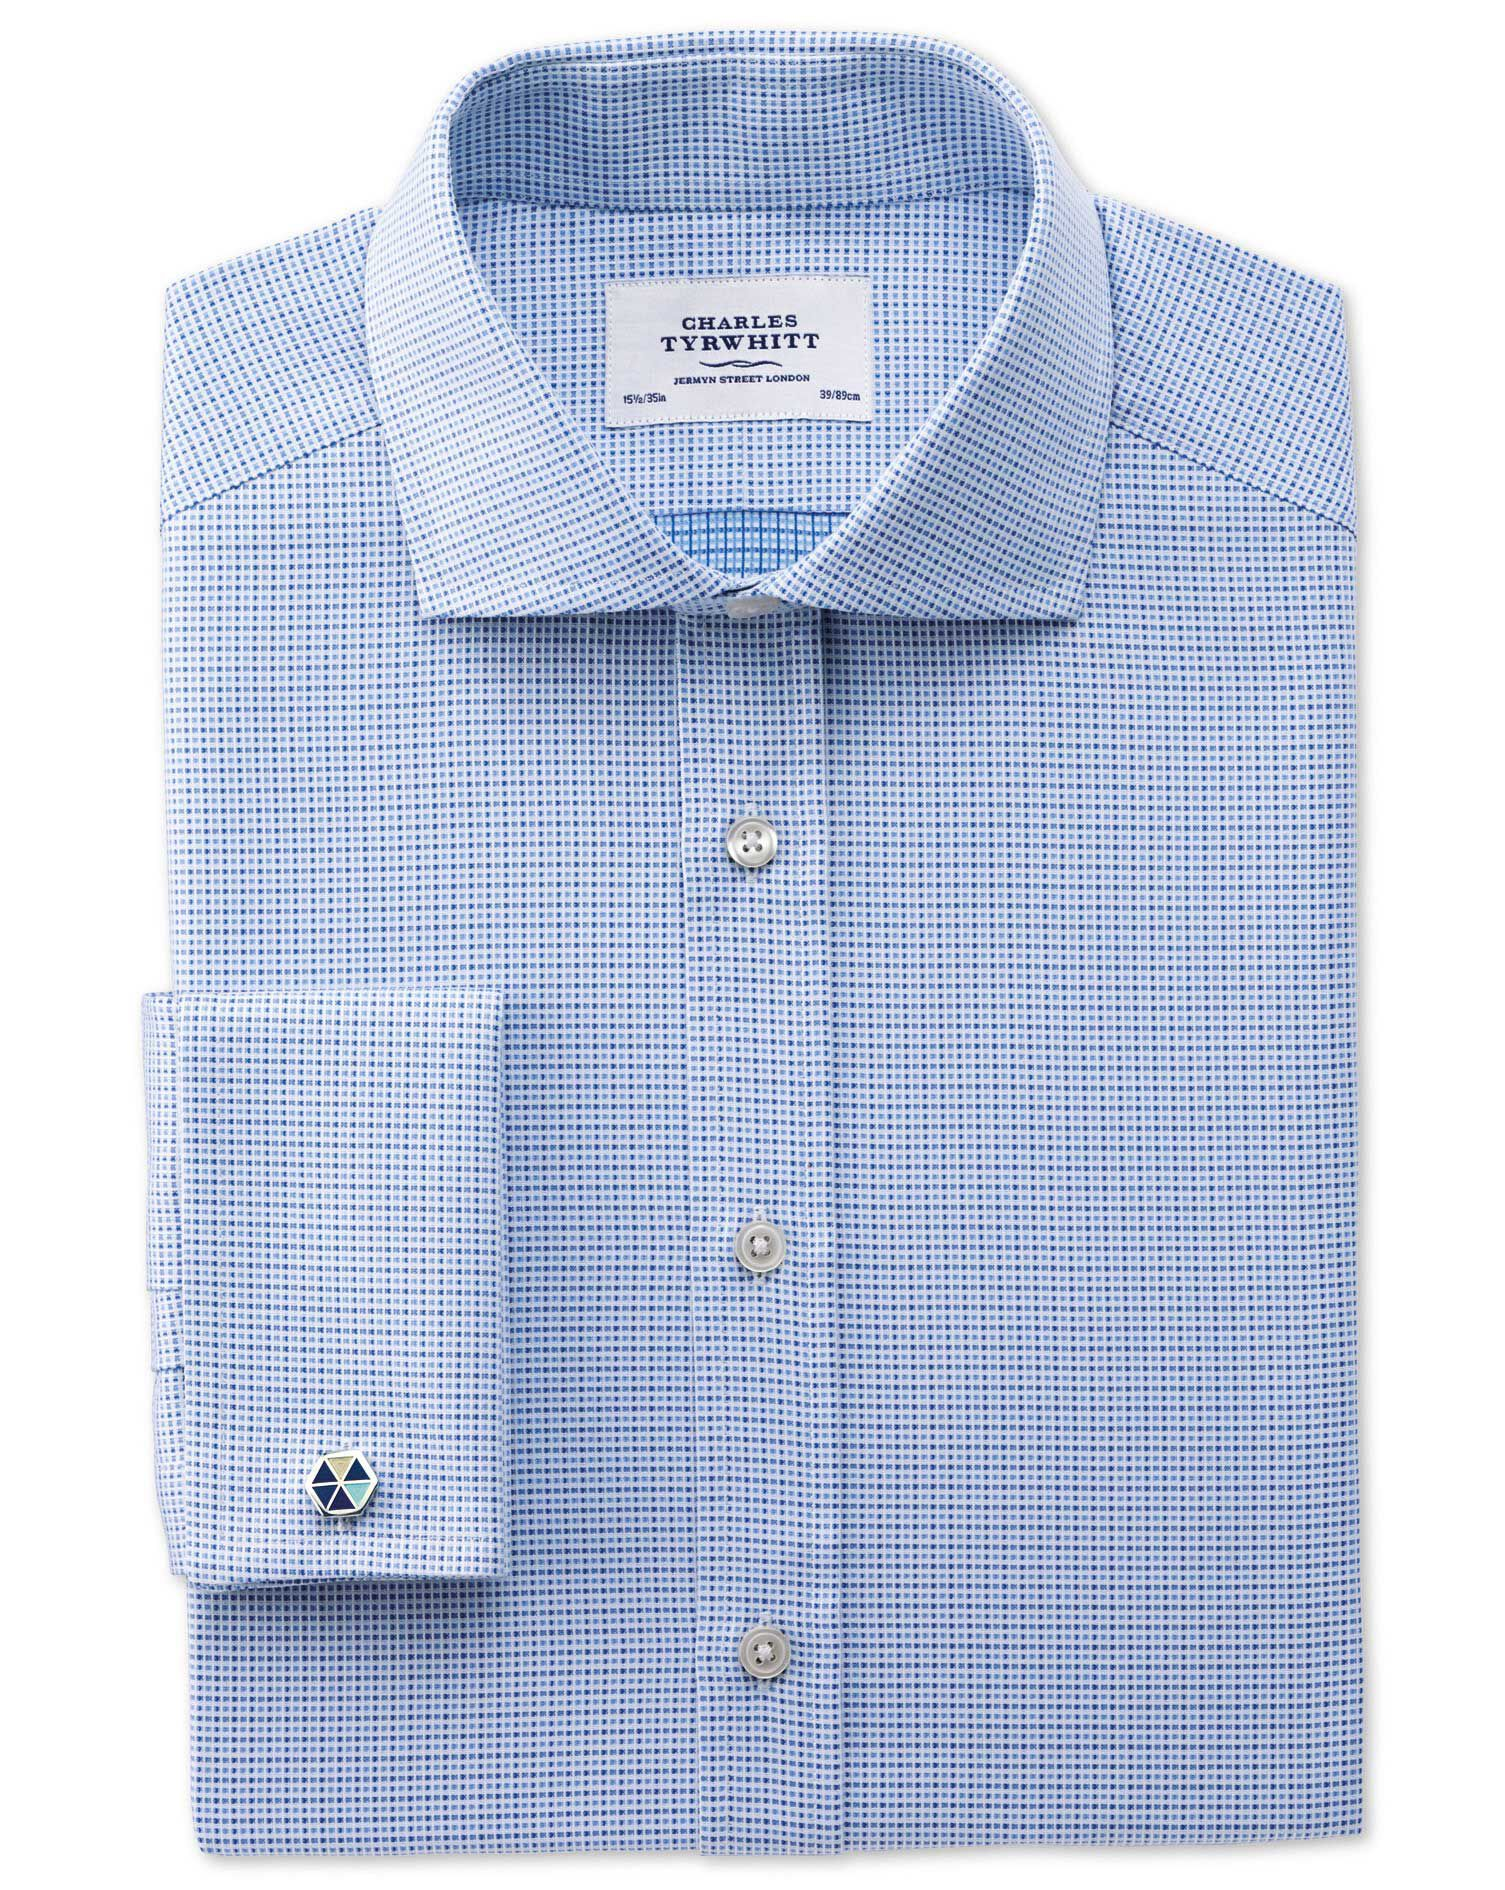 Slim Fit Cutaway Collar Egyptian Cotton Textured Blue Formal Shirt Double Cuff Size 17.5/34 by Charl